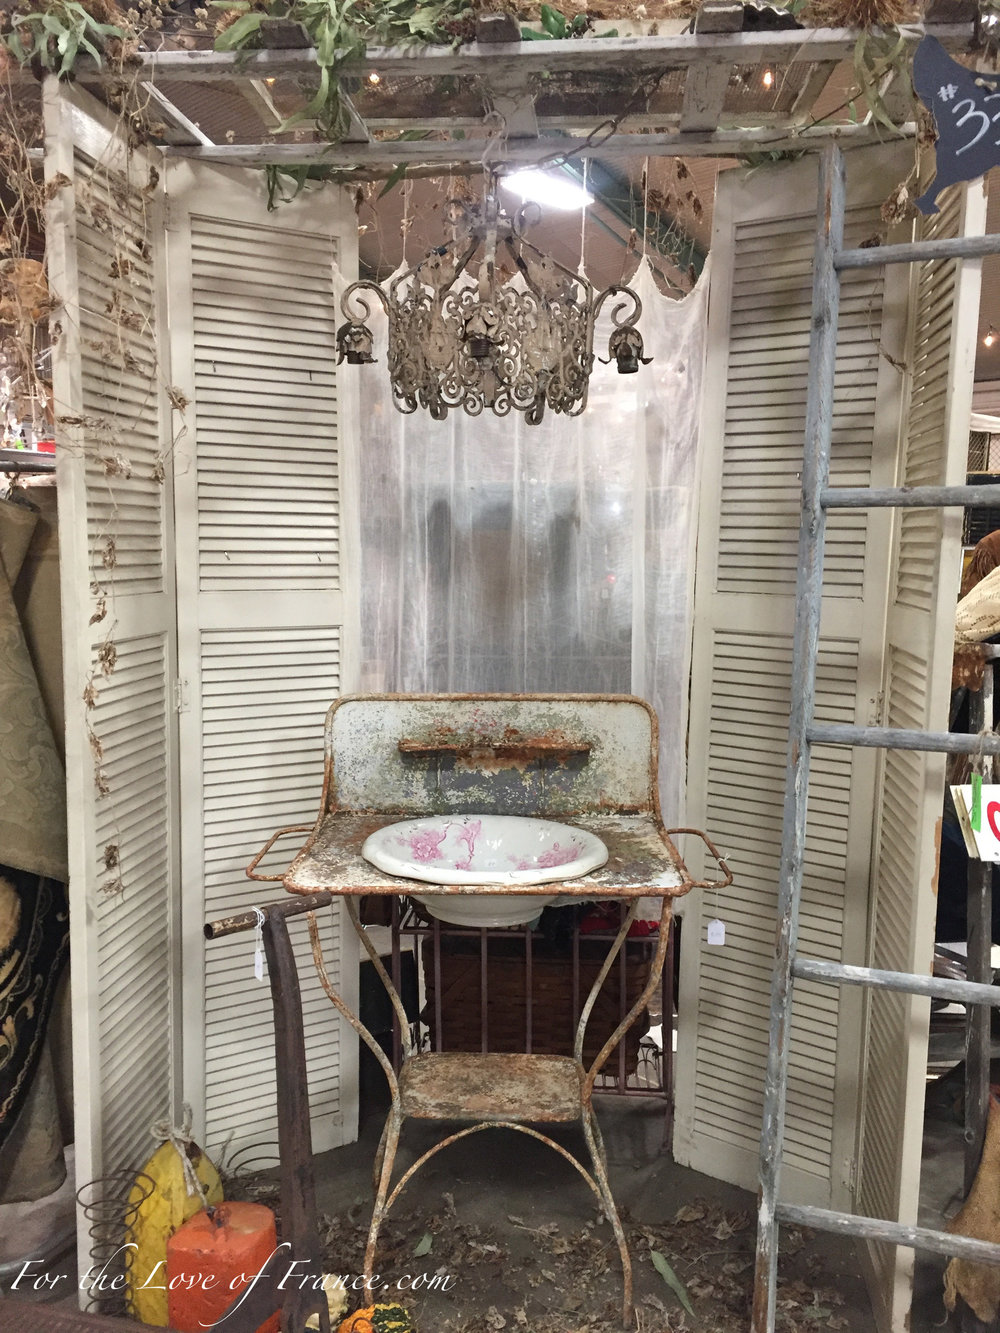 Vintage display with antique French shutters, chandelier, wash basing and stand